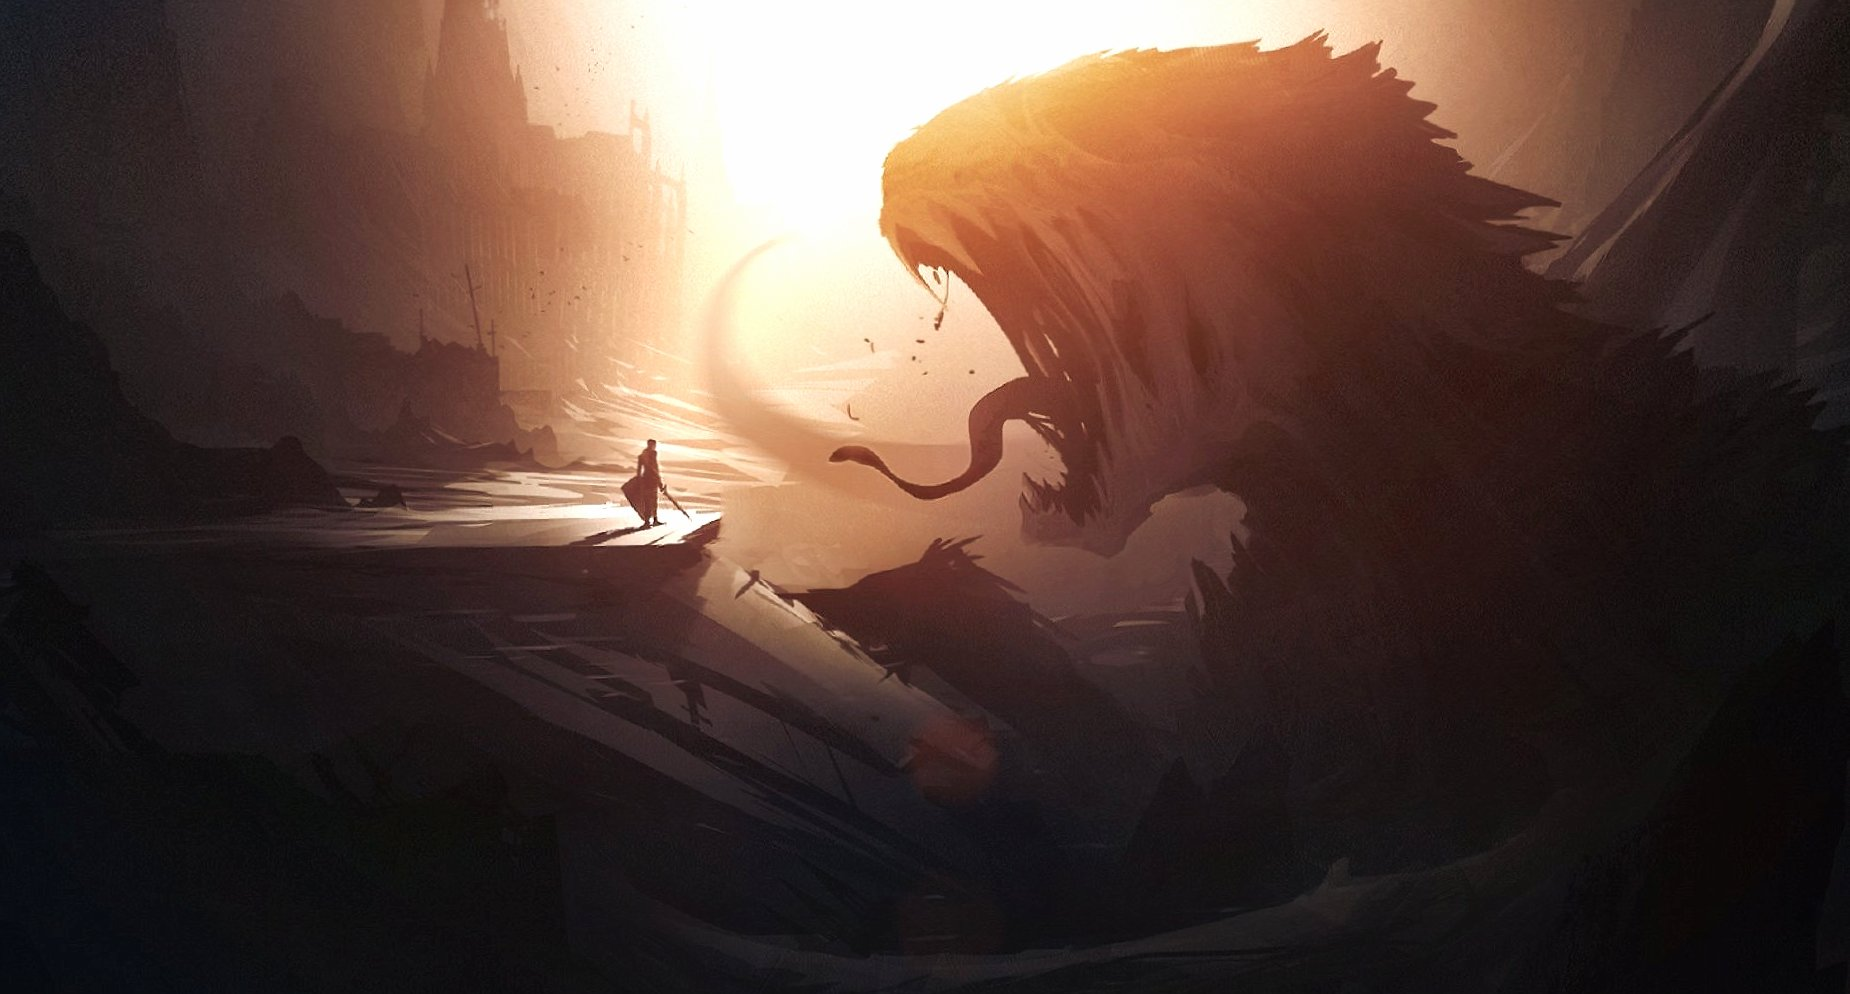 Man and giant creature wallpapers HD quality